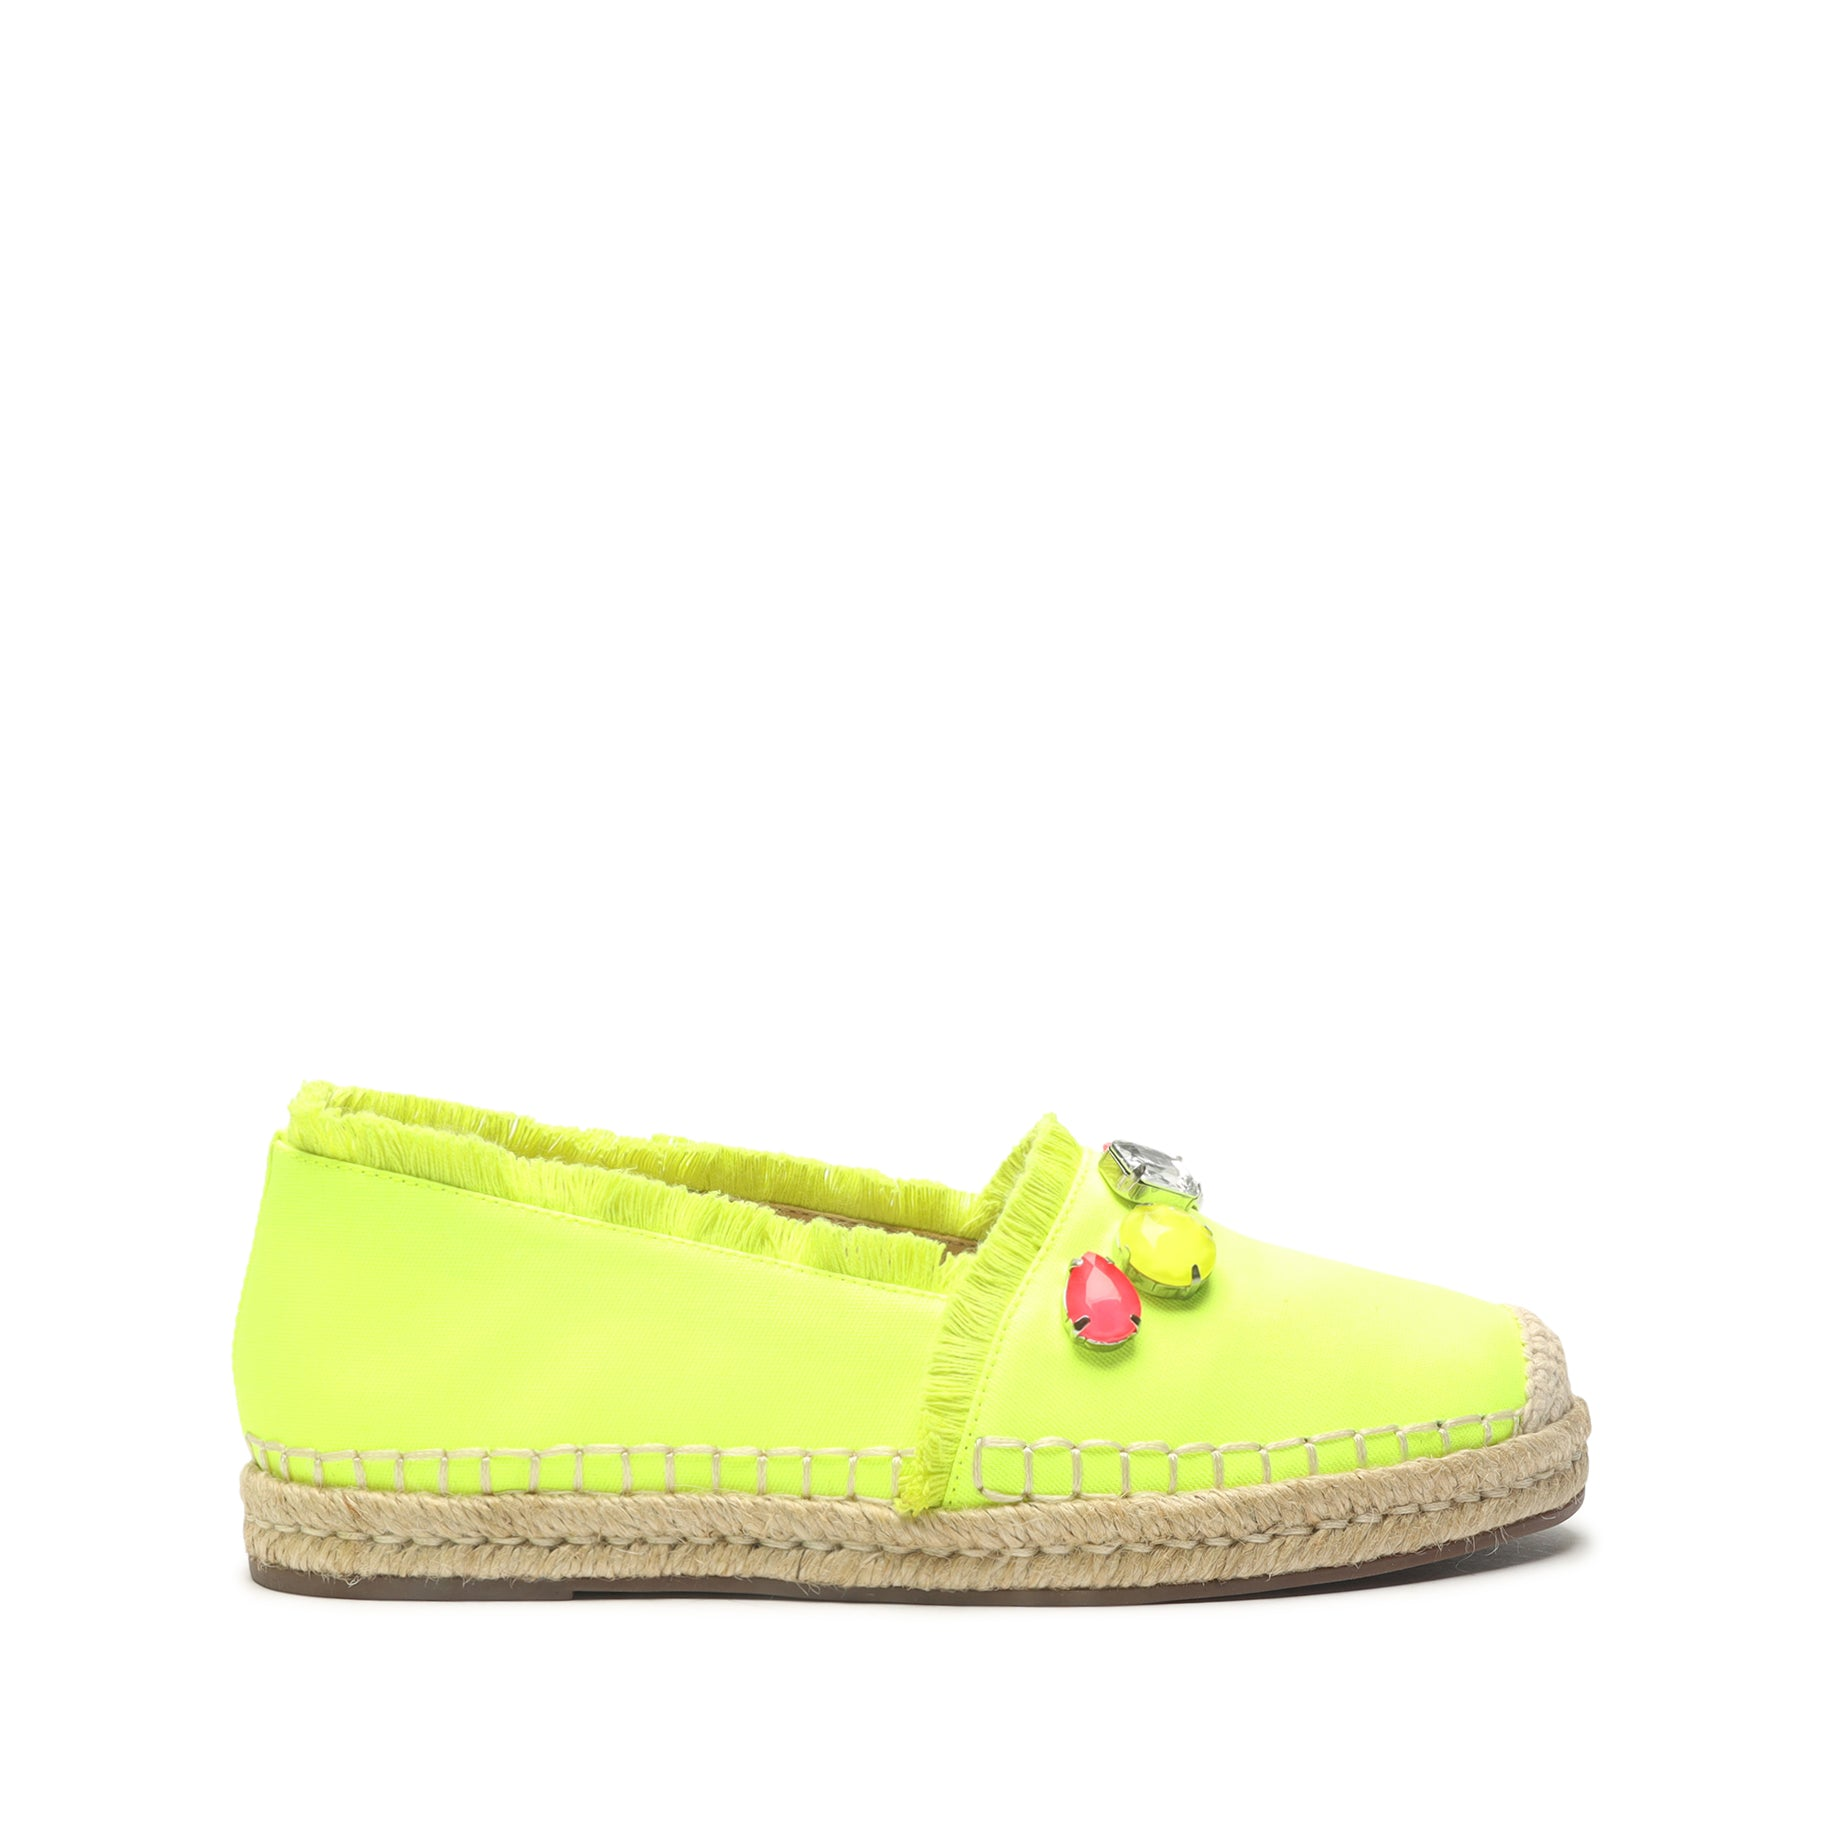 Kris Embellished Canvas Espadrille